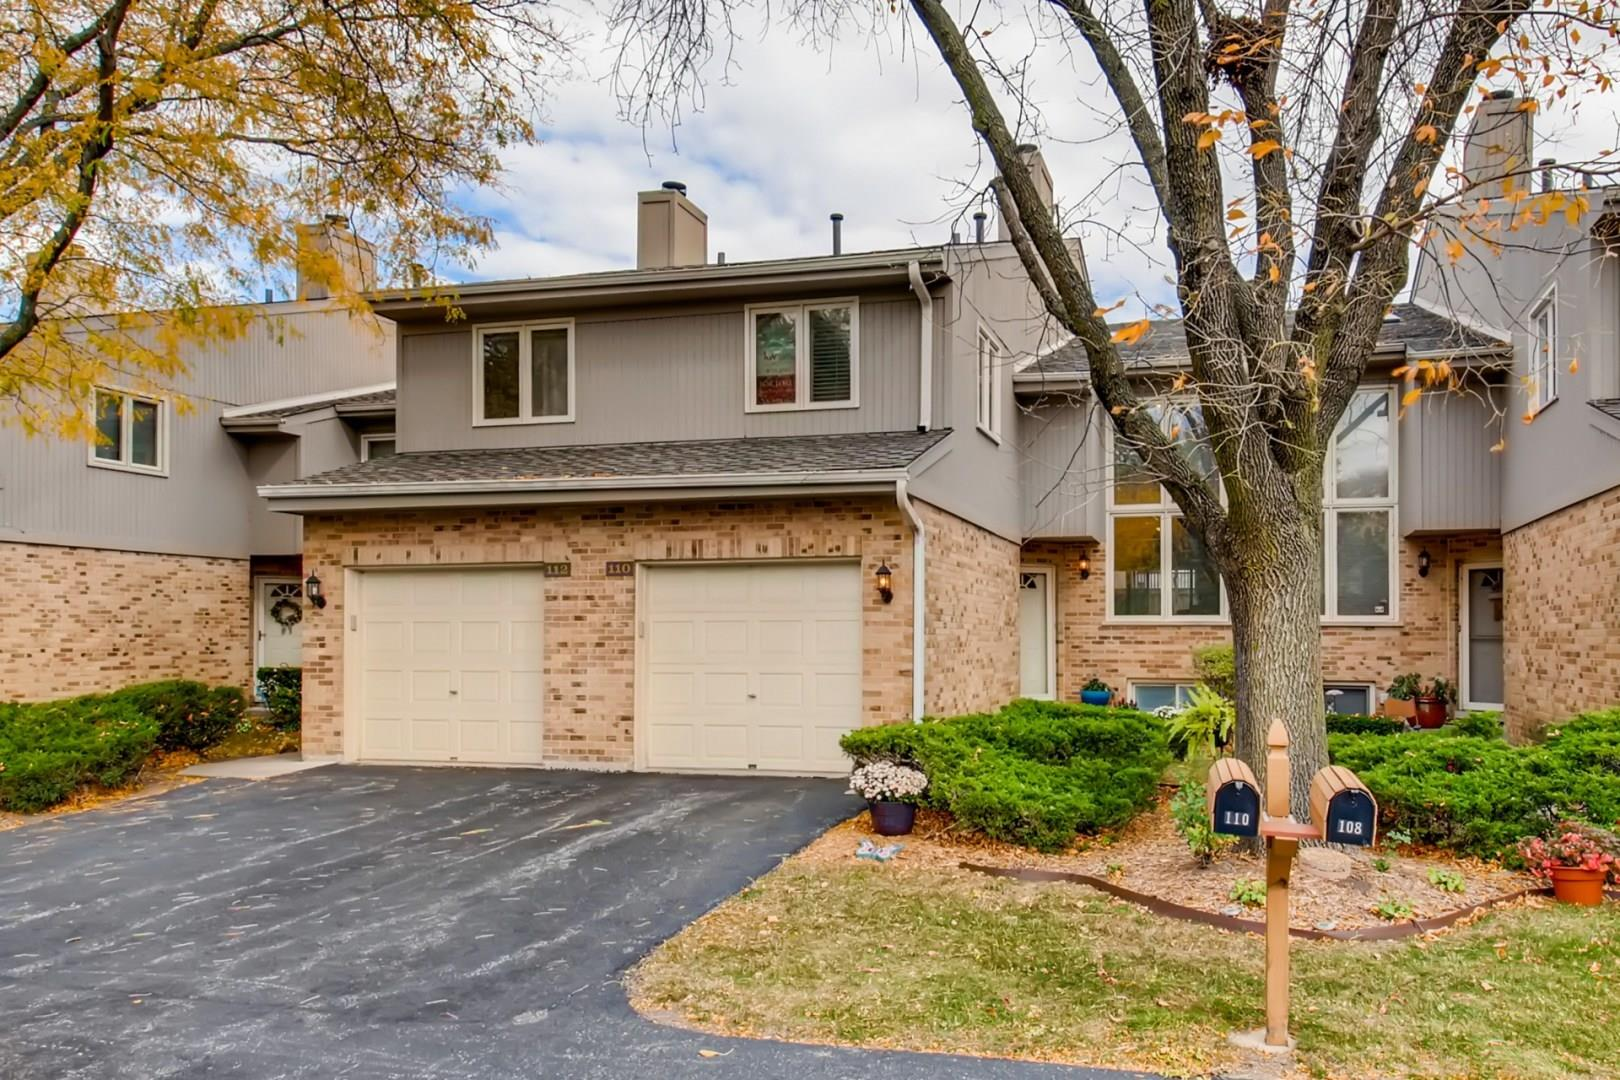 22W110 Butterfield Road, Glen Ellyn, IL 60137 - #: 10910156